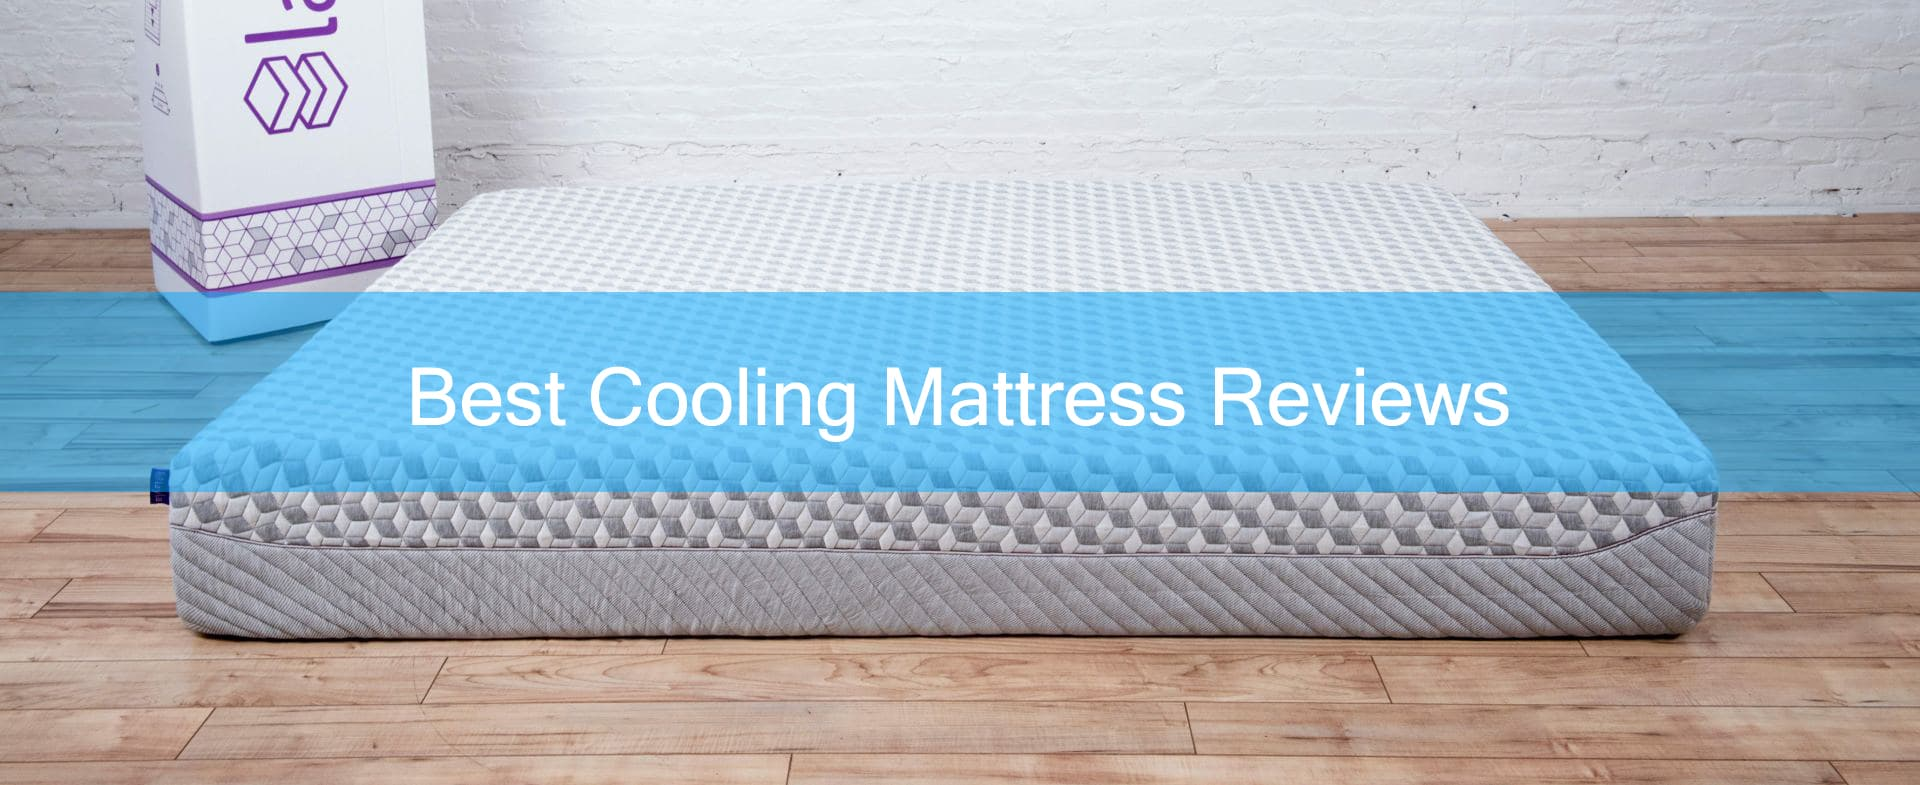 Beds Mattresses Adjustable And